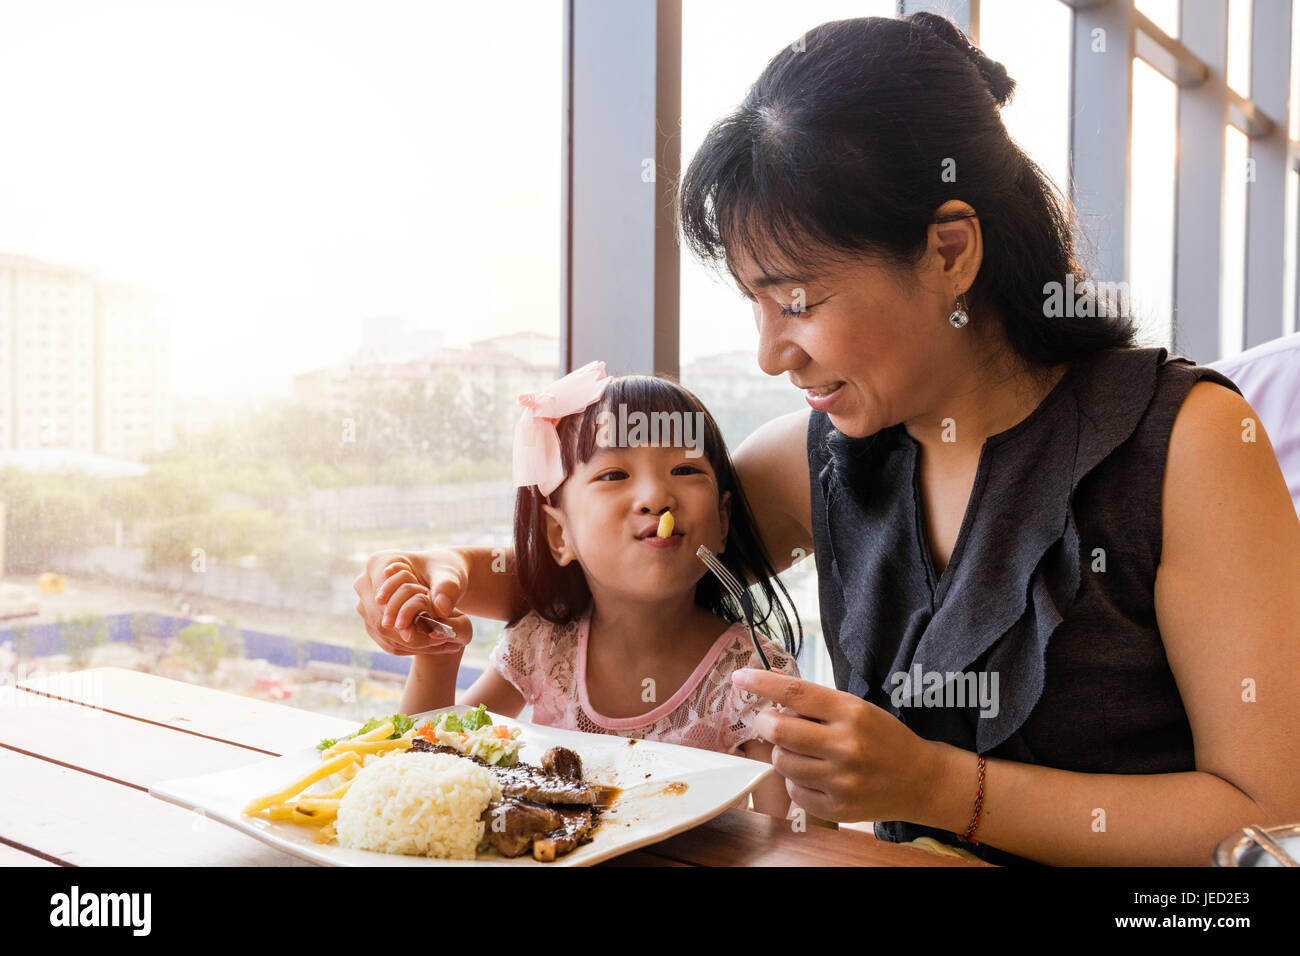 Chinois asiatique mother and daughter eating steak dans le restaurant. Photo Stock